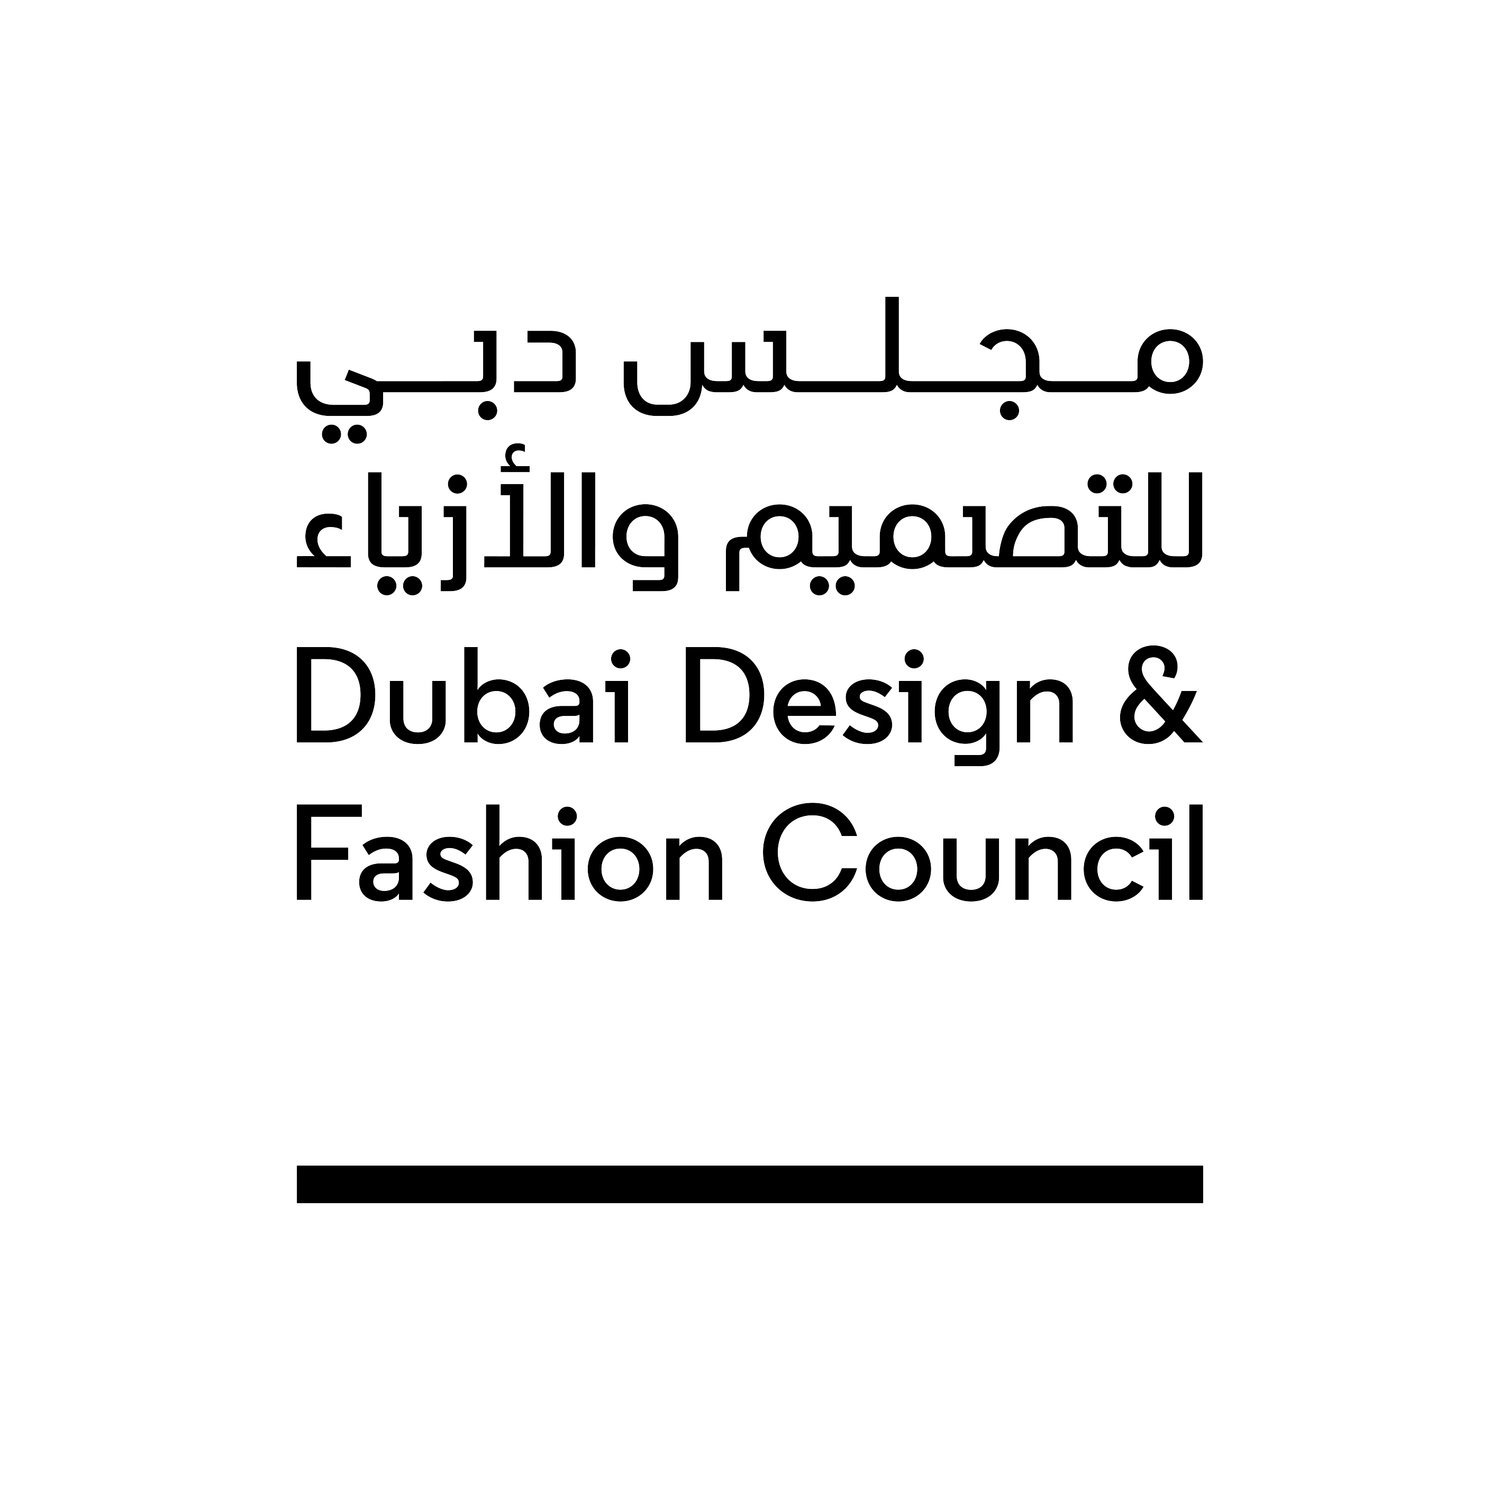 Ddfc And China S Srp Group Launch Competition To Elevate Dubai S Design Industry Business Wire